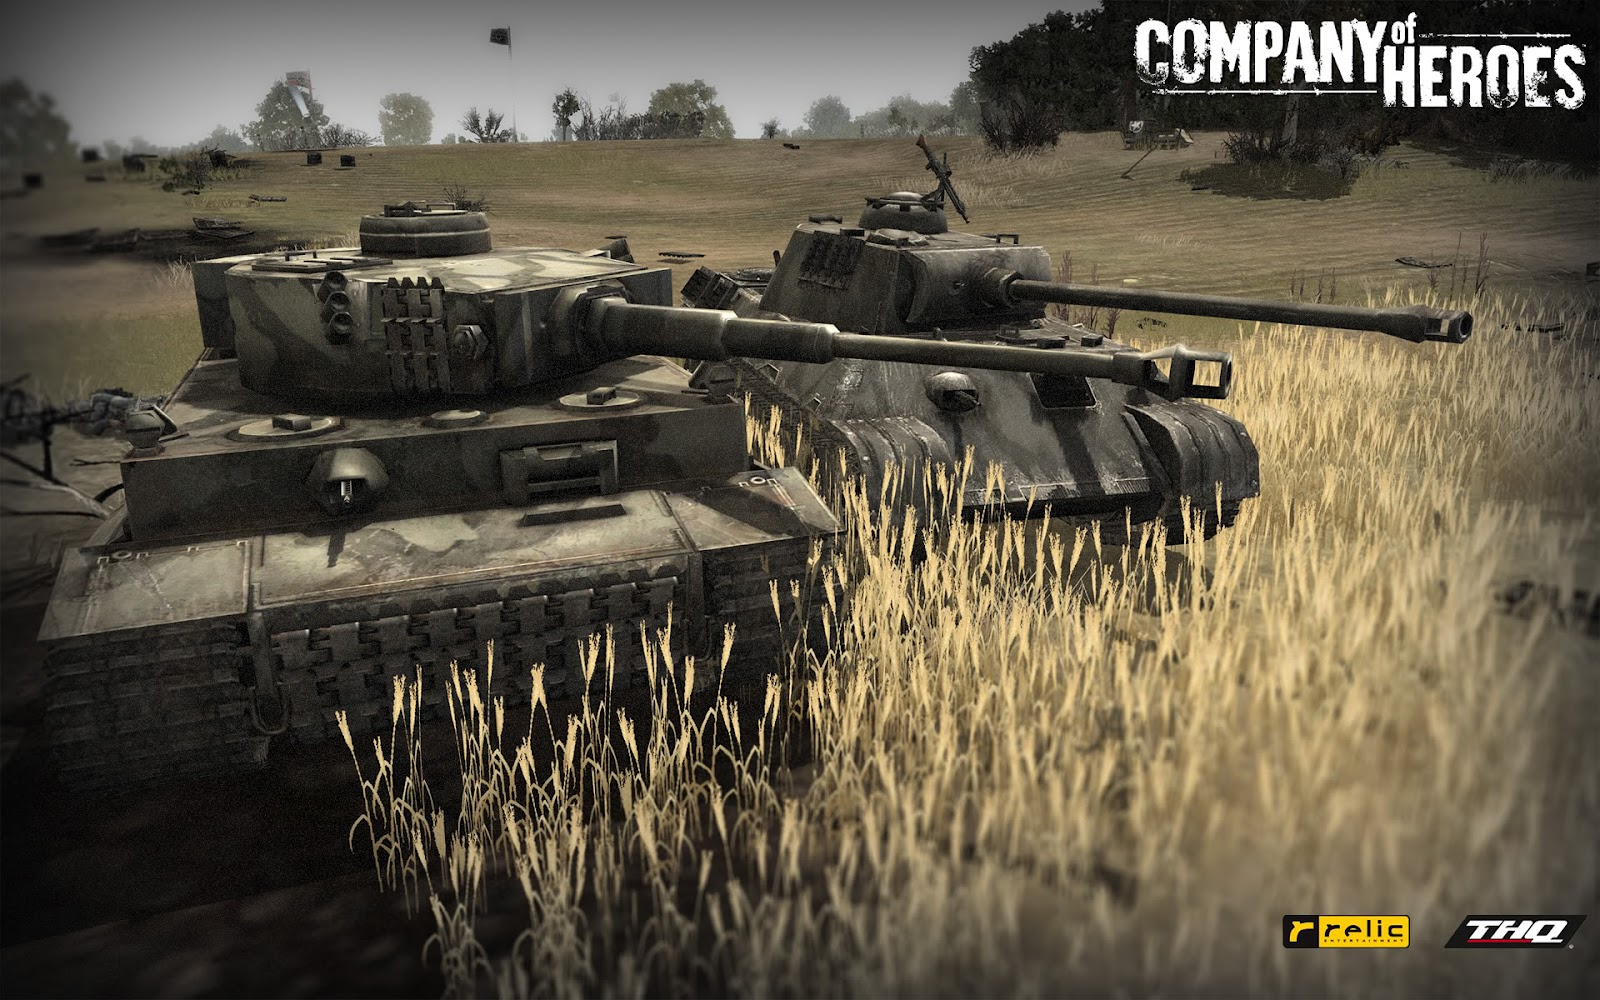 company of heroes wallpapers ~ g/c entertainment system